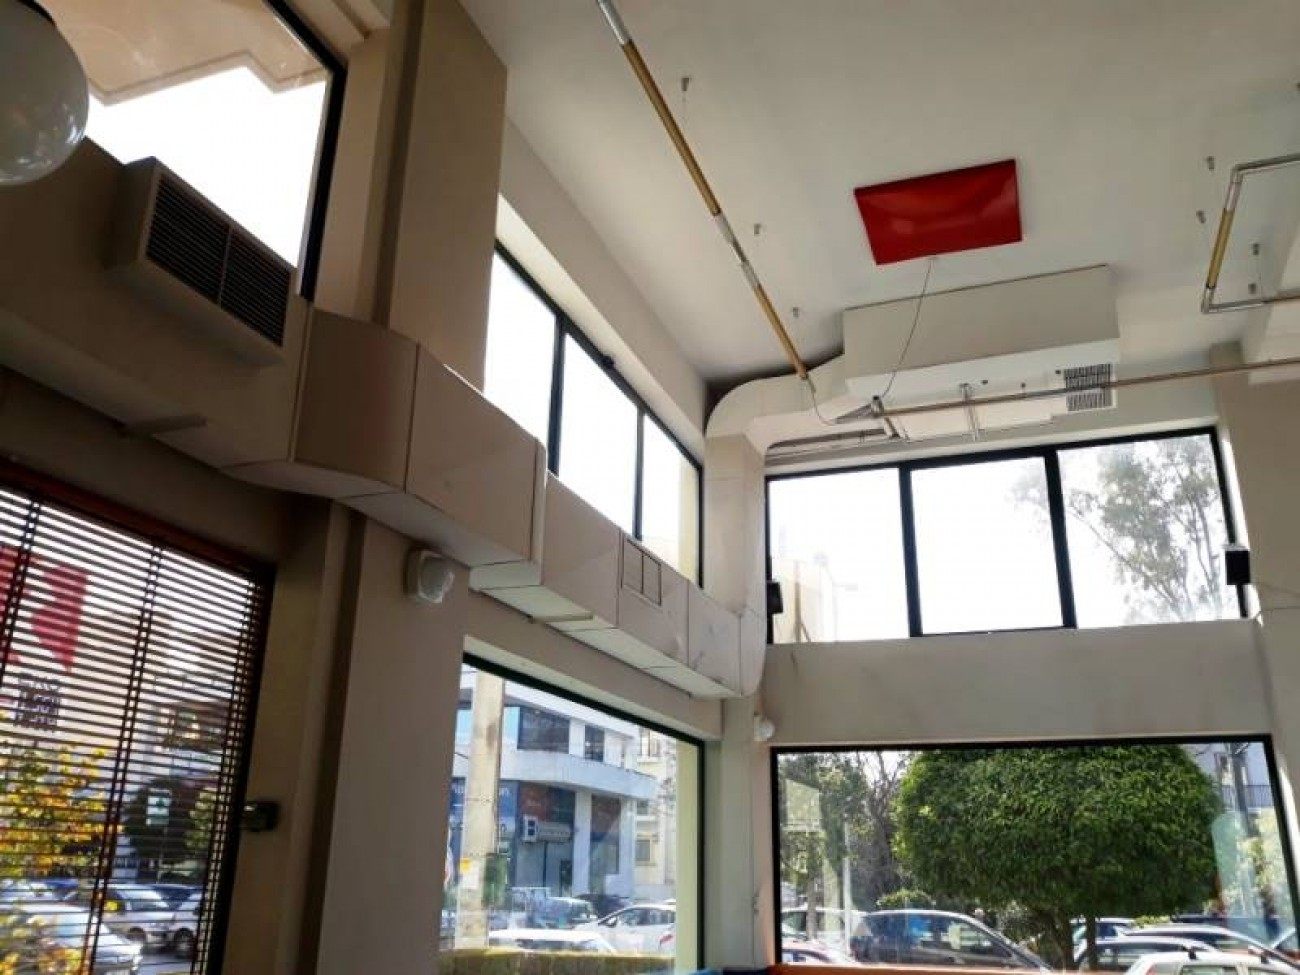 Building for Sale in Northern & Eastern Suburbs, Prefecture of Attica